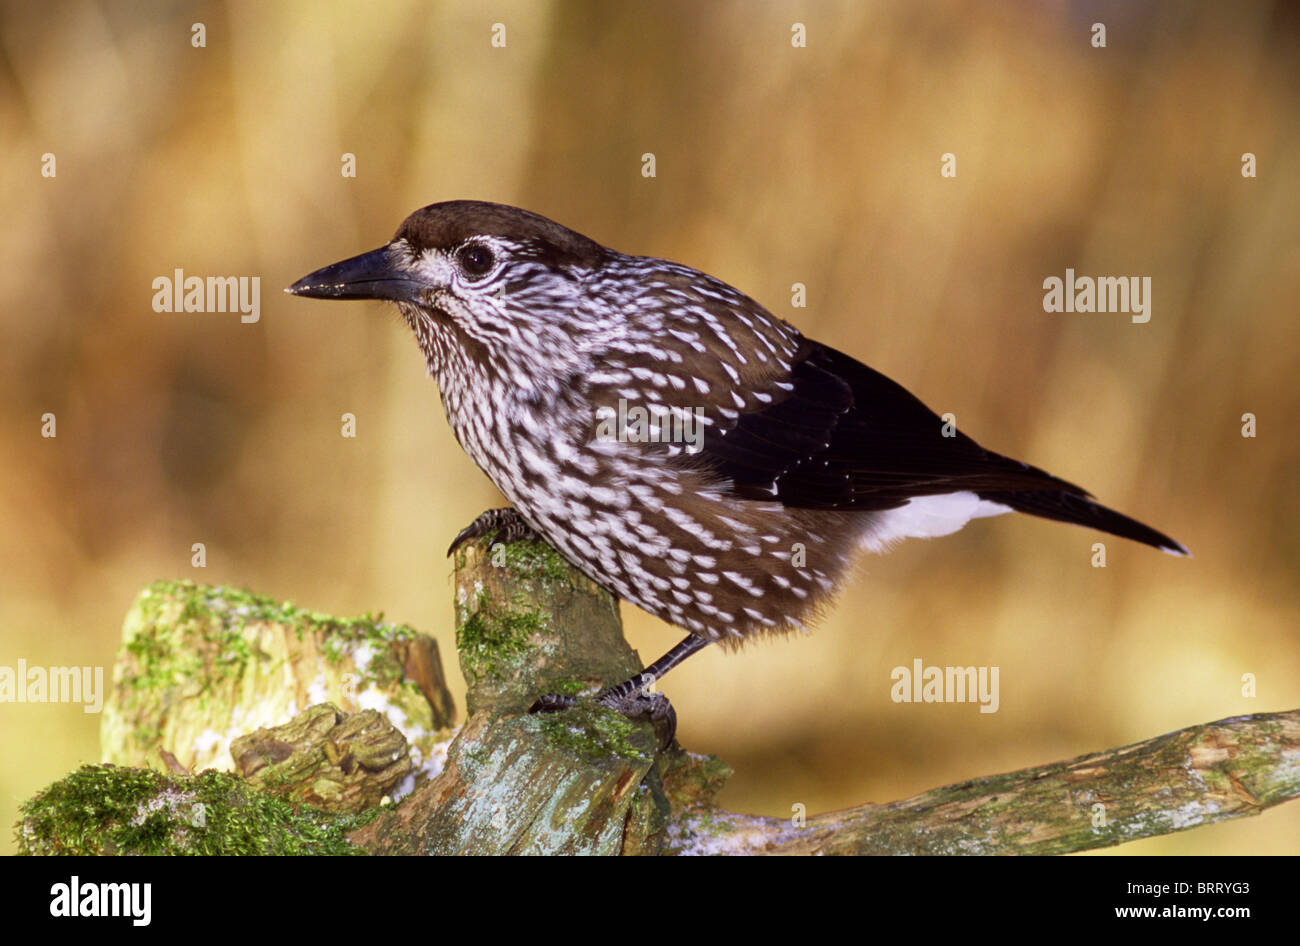 Spotted Nutcracker (Nucifraga caryocatactes) searching for food - Stock Image